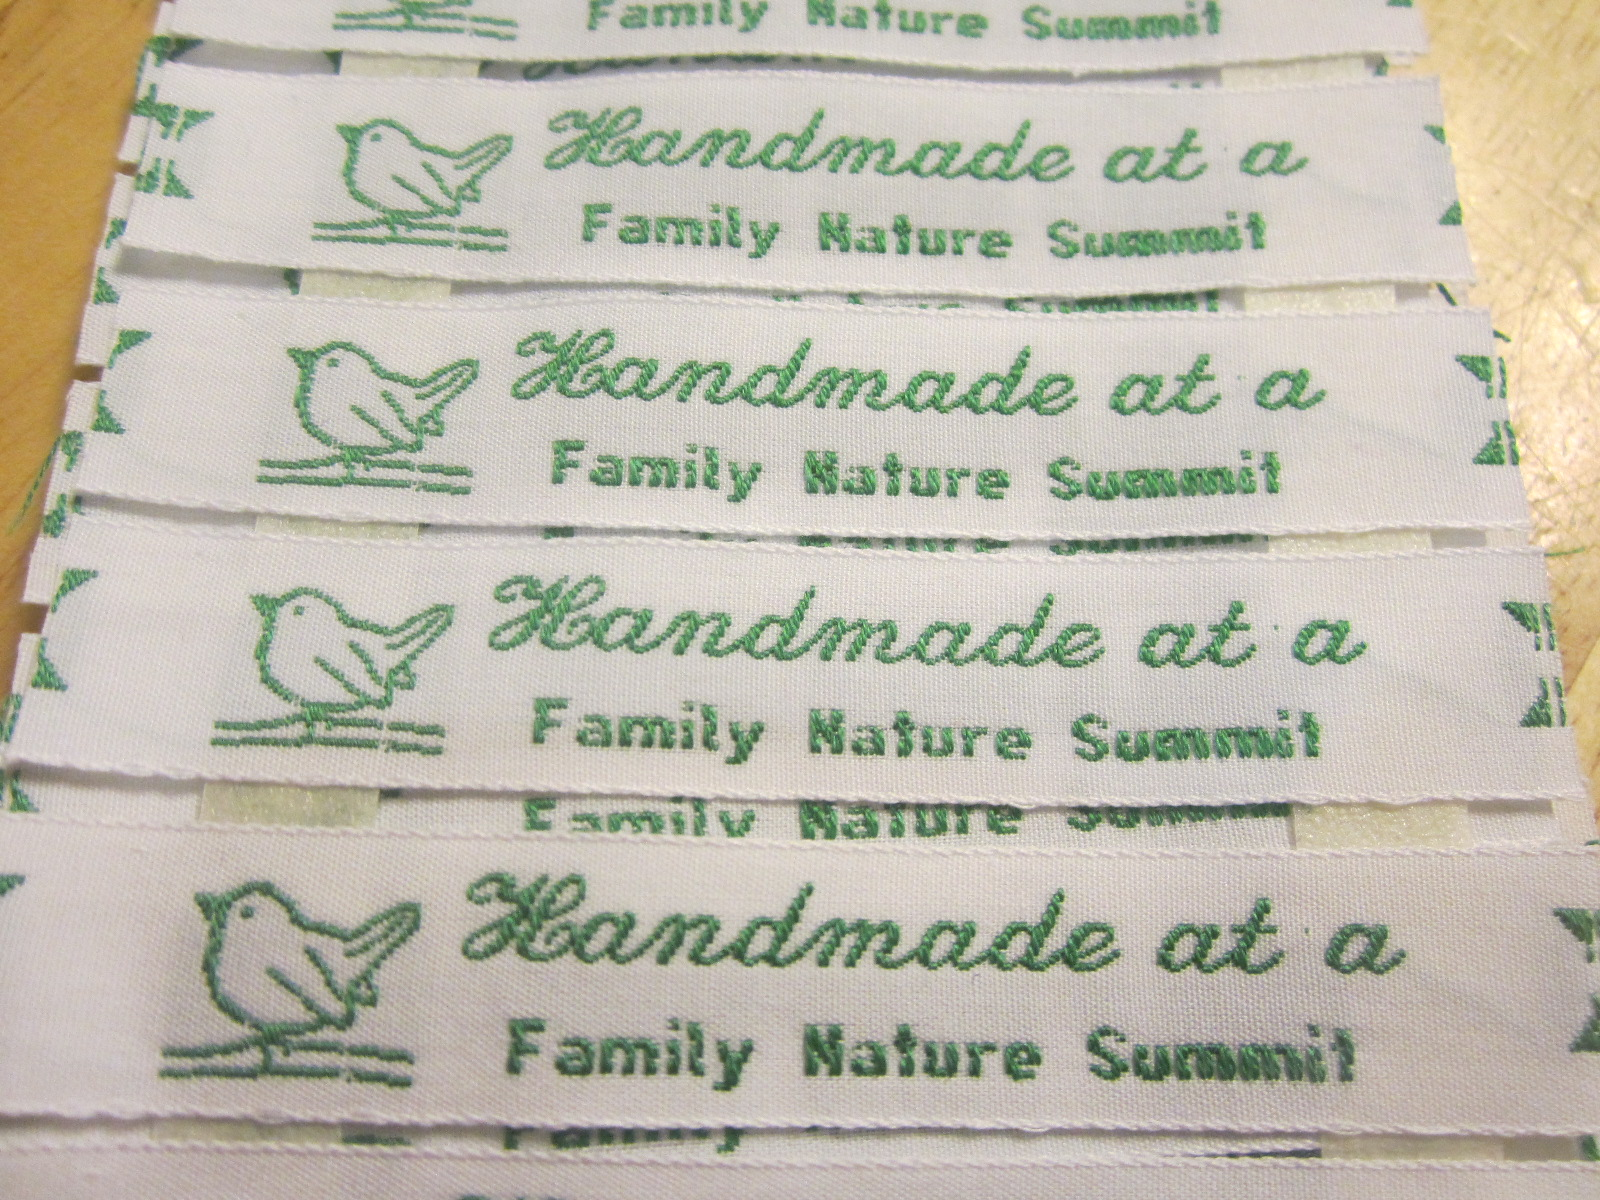 Handmade at a Family Nature Summit craft labels